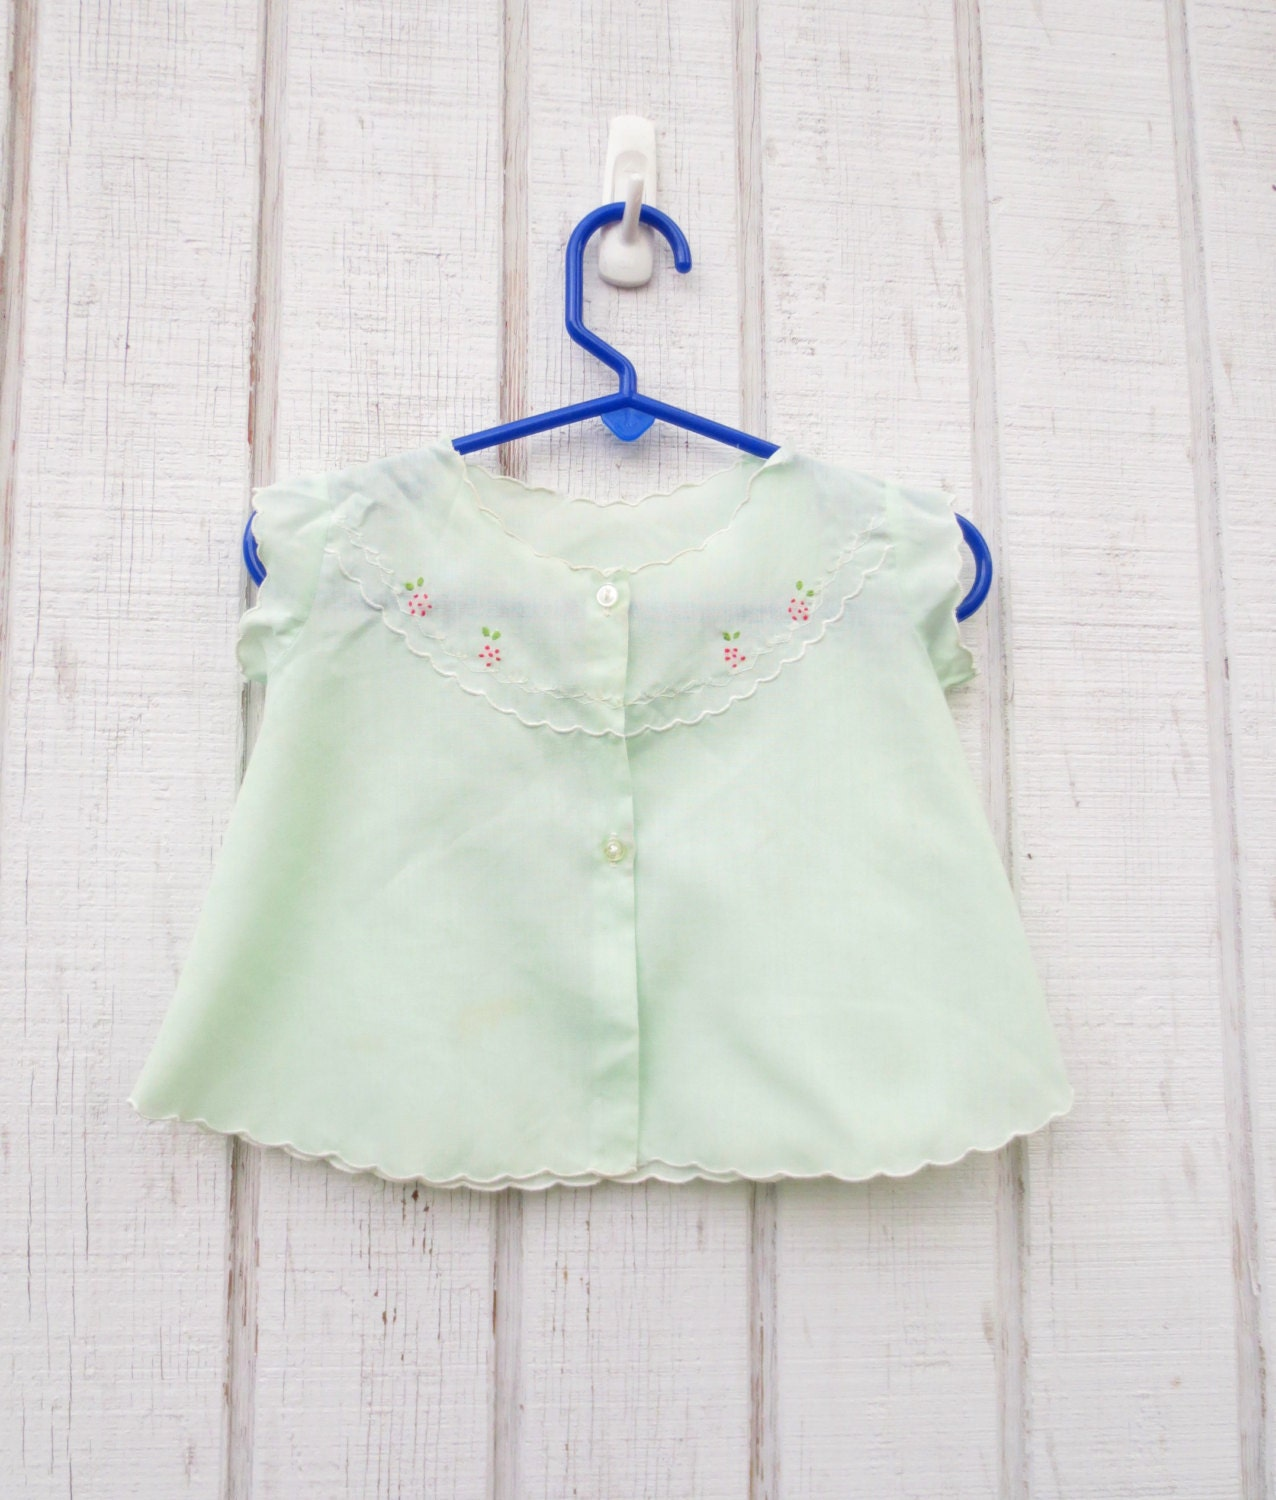 Shop for mint baby clothes online at Target. Free shipping on purchases over $35 and save 5% every day with your Target REDcard.